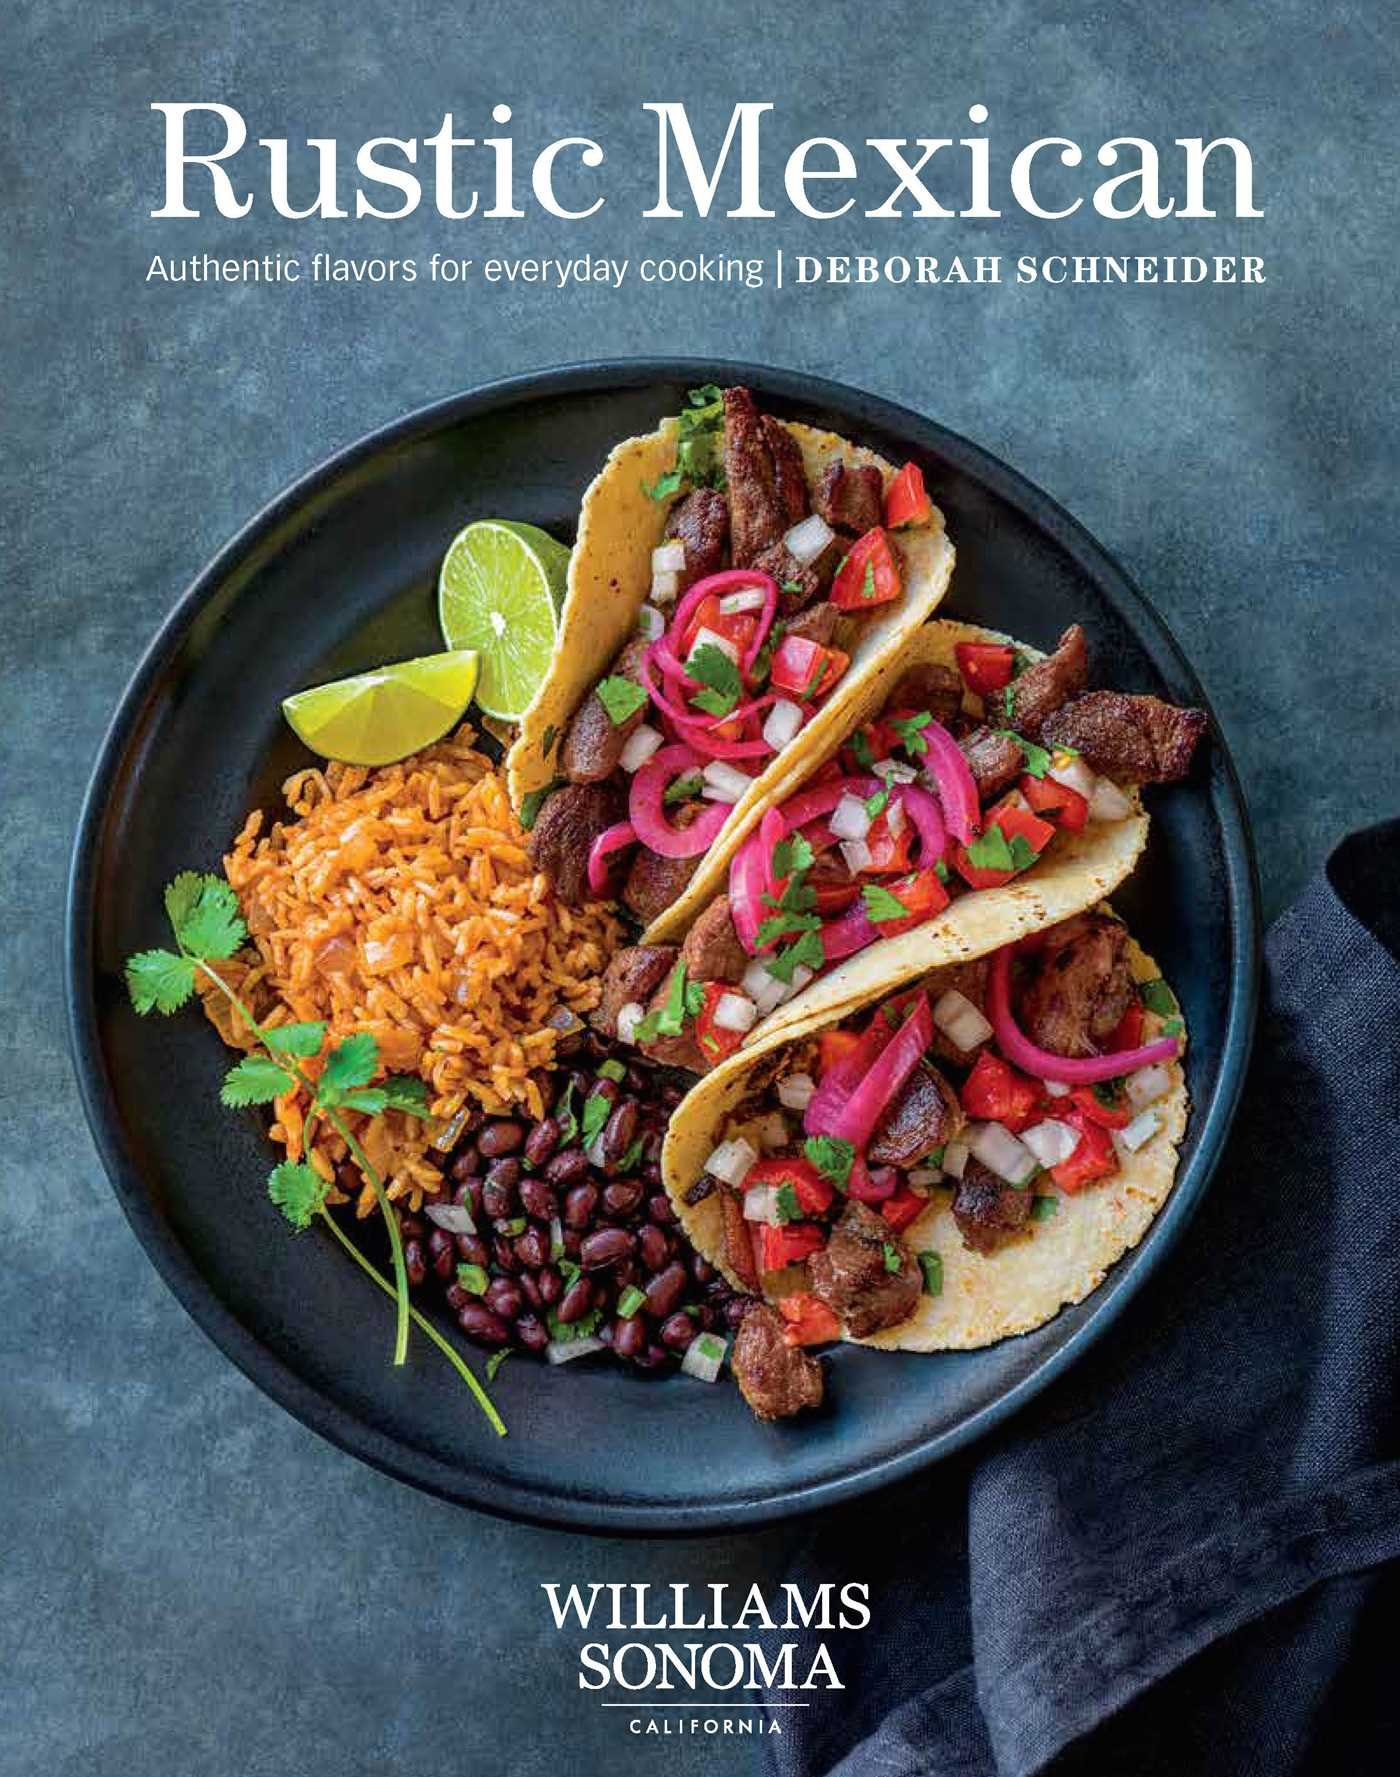 Image result for rustic mexican cookbook""